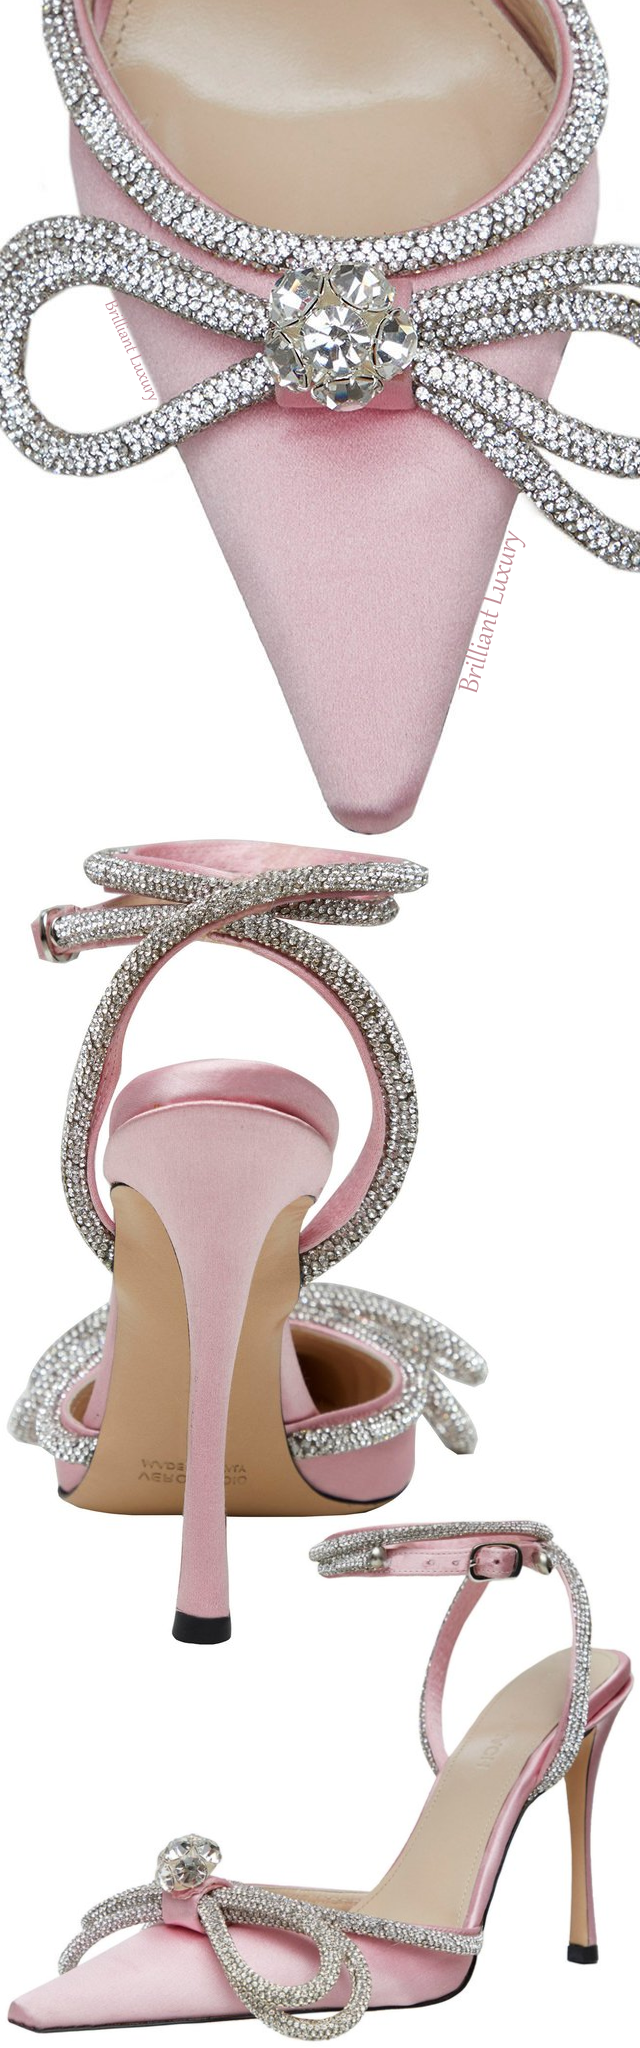 Mach & Mach pink crystal double bow pump #brilliantluxury